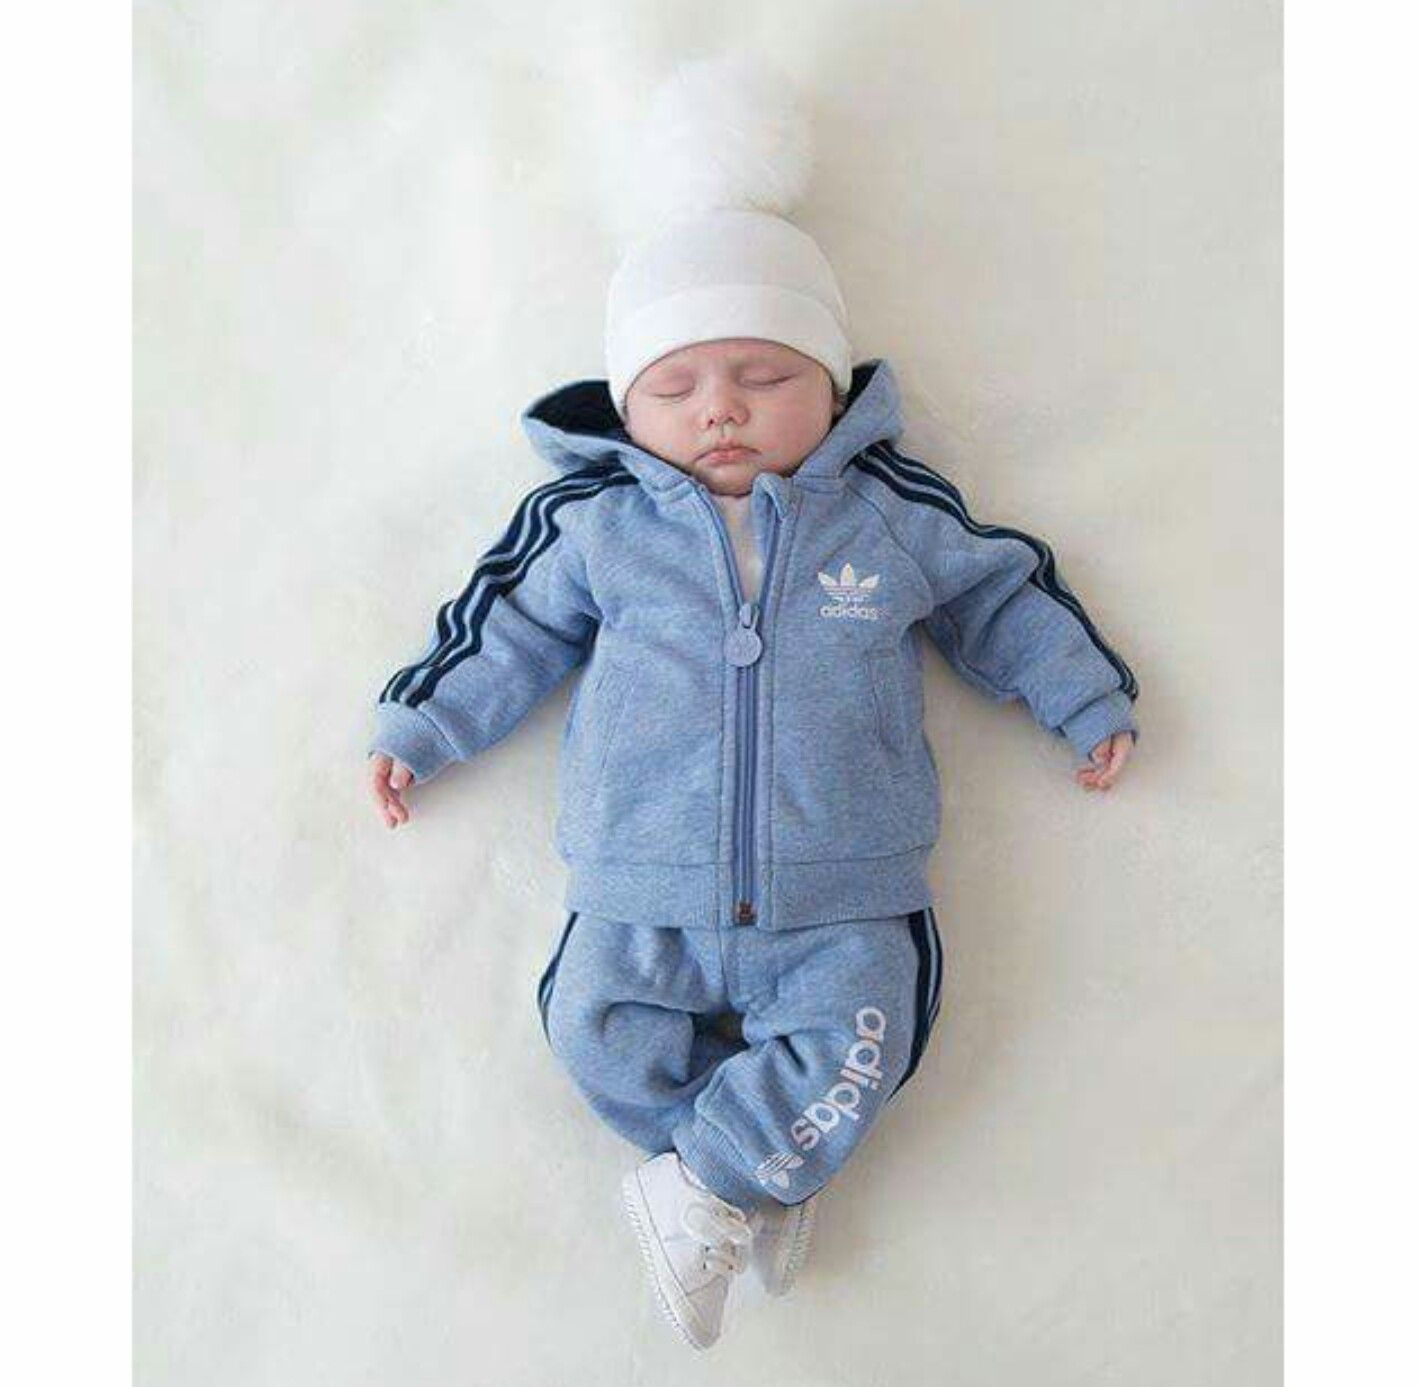 Baby Adidas Anzug 3 Babys Baby Anzug Adidas Anzug Und Baby Outfits